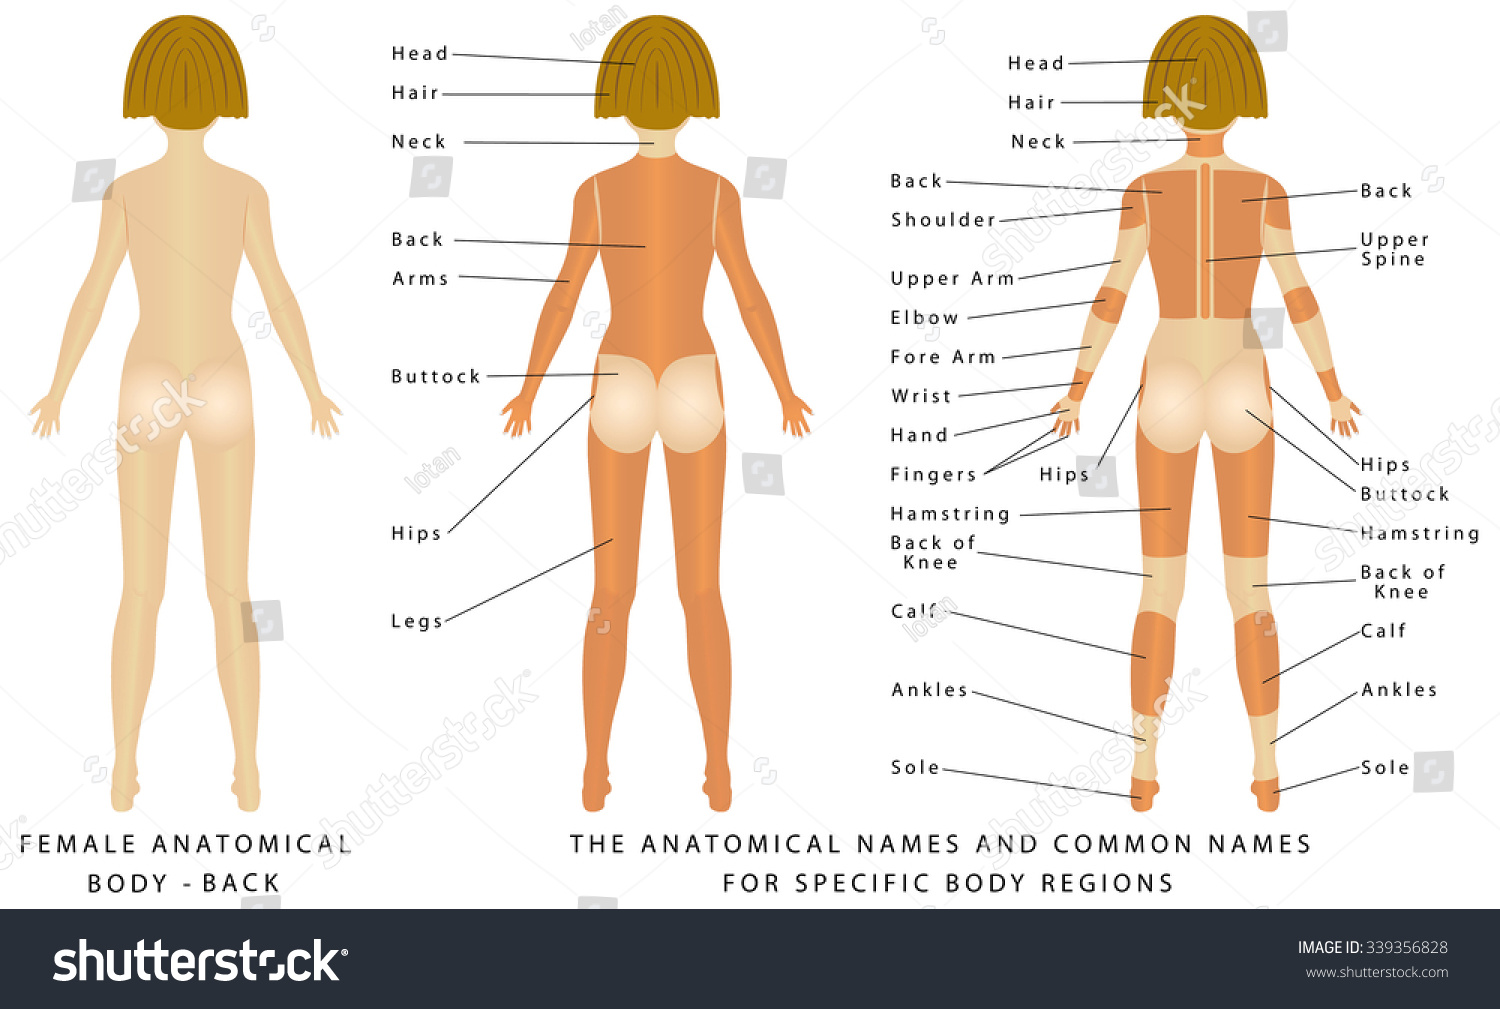 Female Body Back Surface Anatomy Human Stock Vector Royalty Free